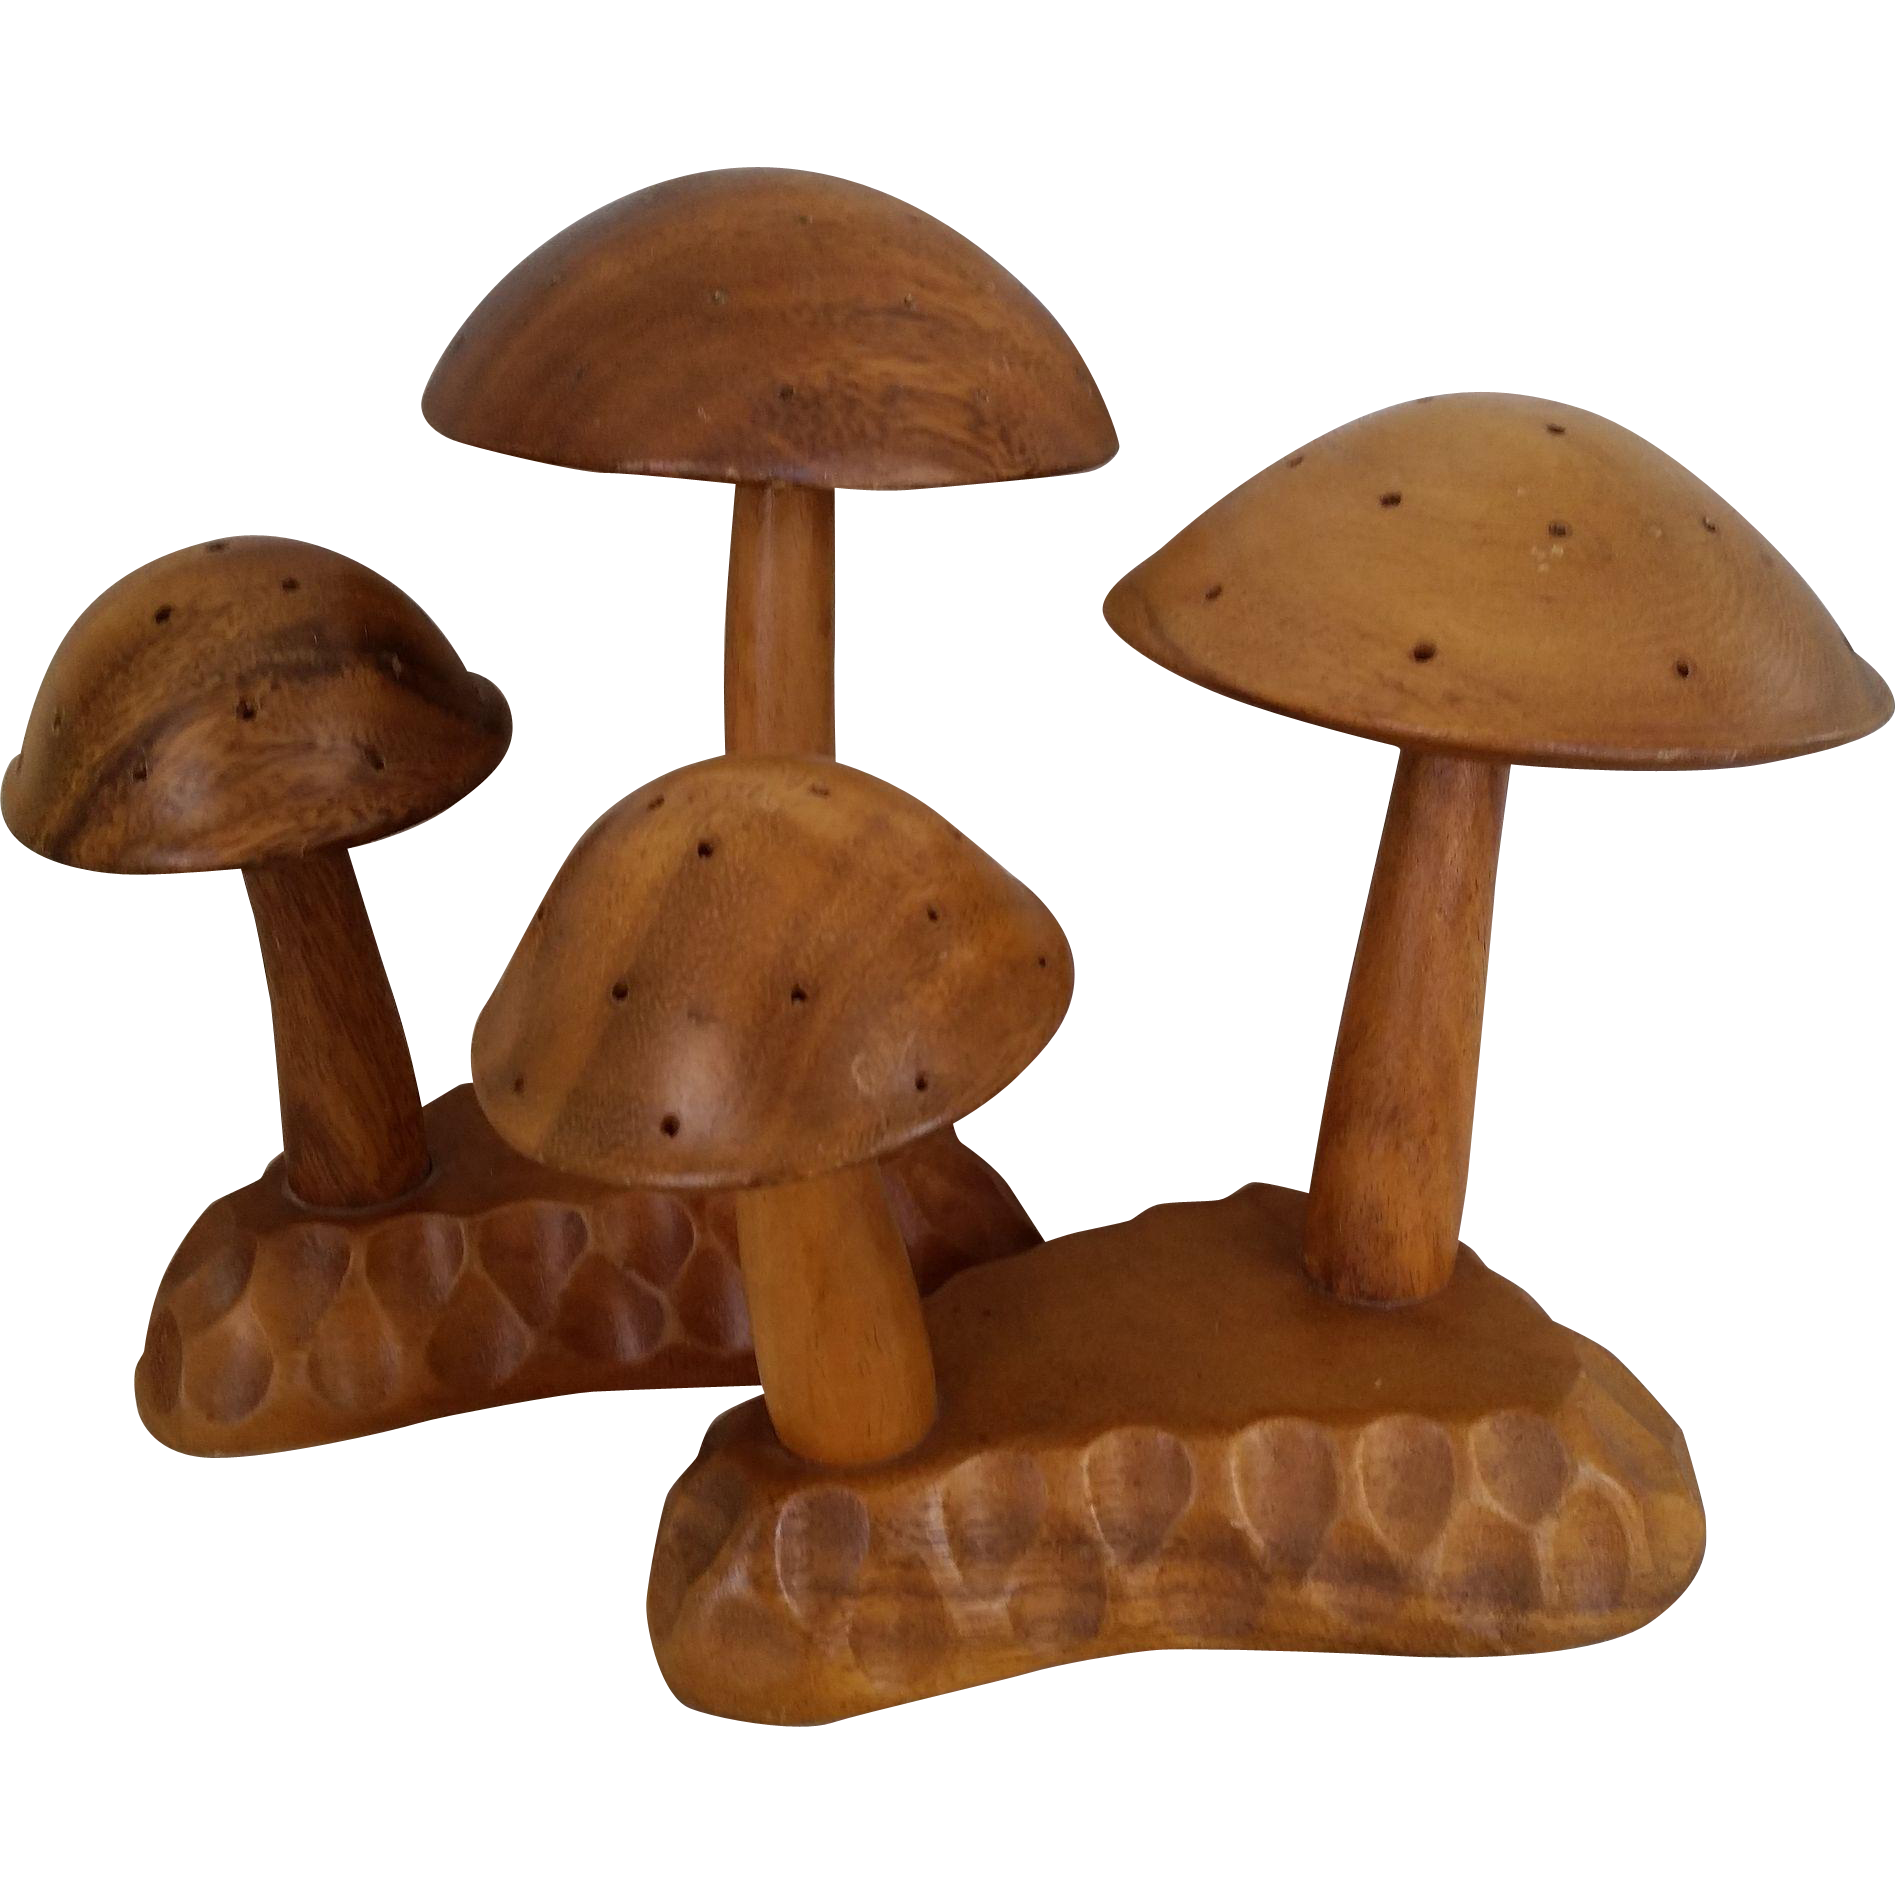 Carved Retro Mushrooms Leilani Monkey Pod Wood Hors d'oeuvre Server / Toothpick Holder